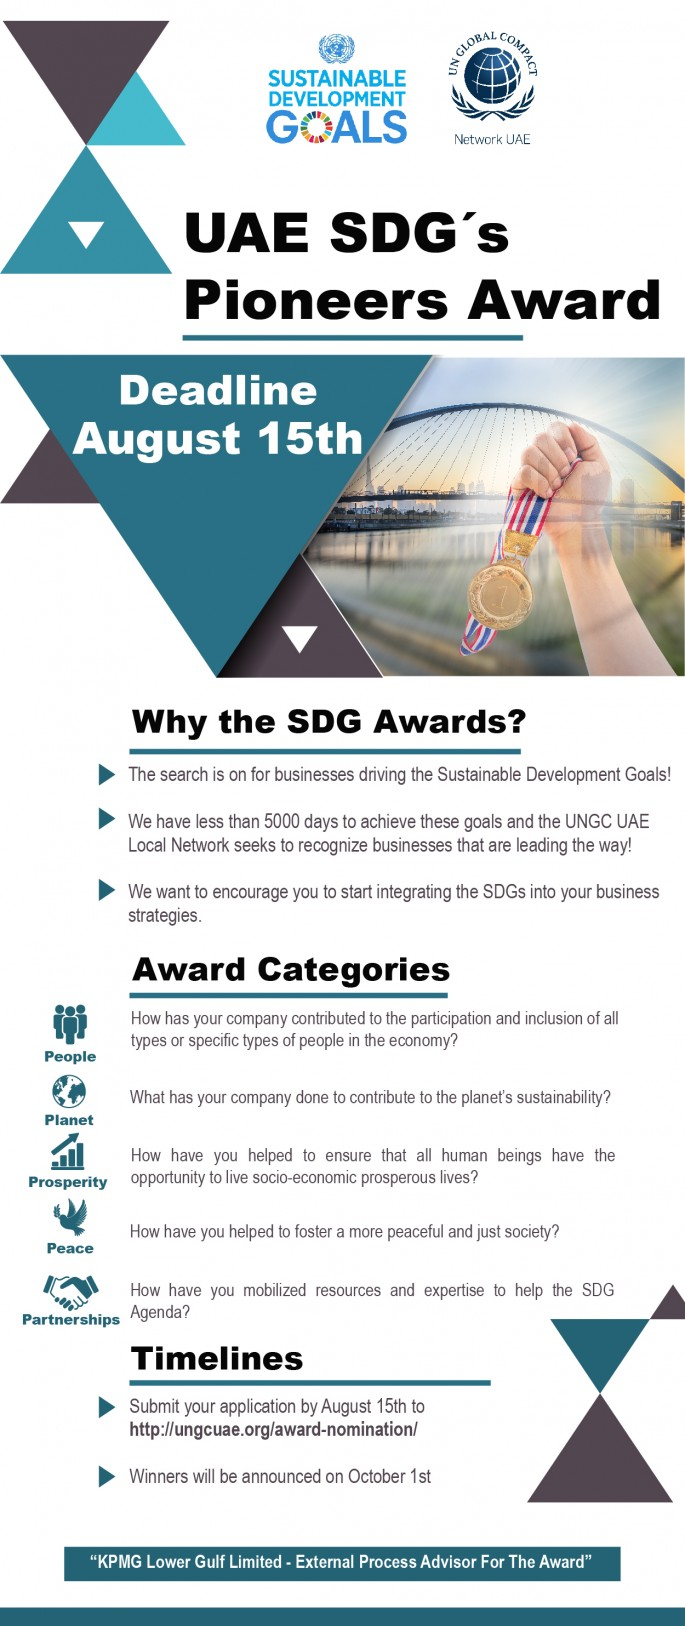 DBWC | Event-UAE SDGs Pioneers Award